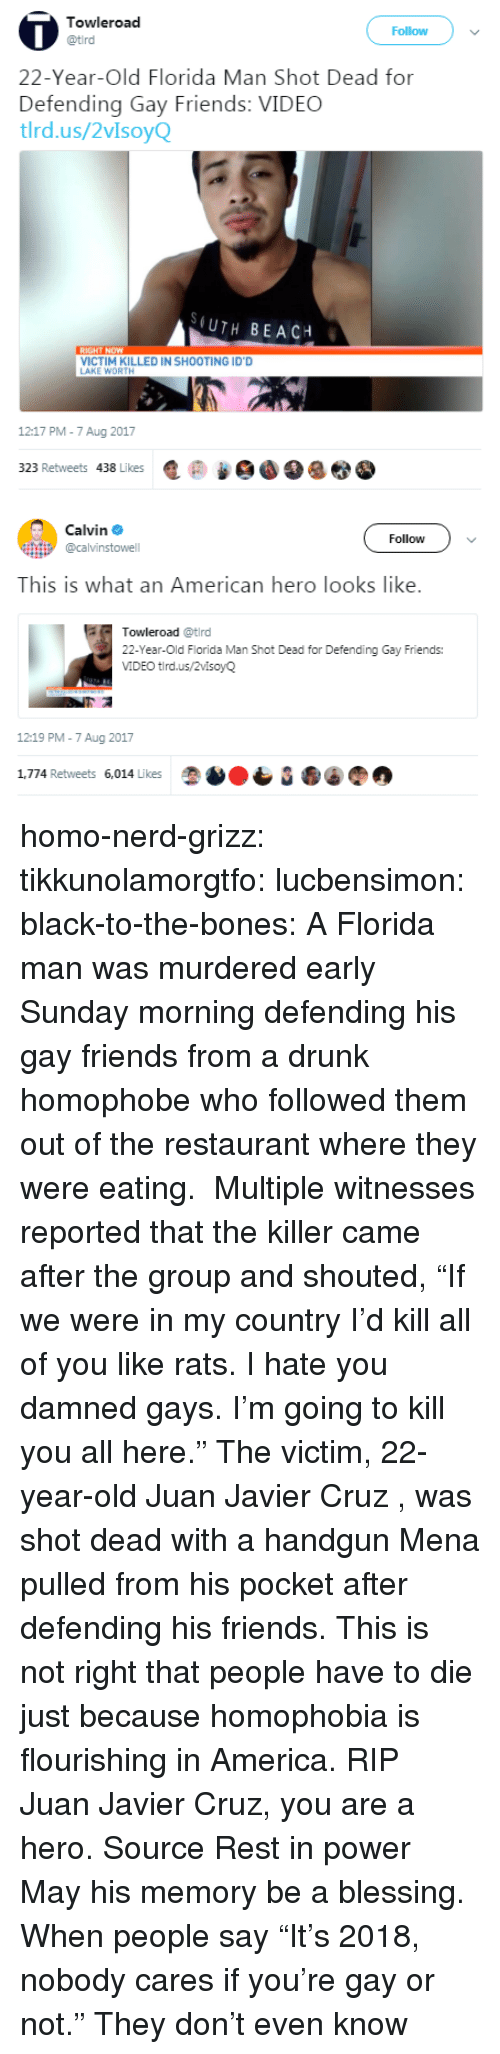 "homophobe: Towleroad  Follow  22-Year-Old Florida Man Shot Dead for  Defending Gay Friends: VIDEC  tlrd.us/2vIsoyQ  (UTH BEACH  VICTIM KILLED IN SHOOTING ID'D  AKE WORTH  1217 PM-7 Aug 2017  323 Retweets 438 Likes匿@   Calvin Φ  @calvinstowell  Follow  This is what an American hero looks like.  Towleroad @tird  22-Year-Old Florida Man Shot Dead for Defending Gay Friends:  VIDEO tird.us/2vlsoyQ  12:19 PM-7 Aug 2017  1,774 Retweets 6,014 Likes homo-nerd-grizz: tikkunolamorgtfo:  lucbensimon:  black-to-the-bones:     A Florida man was murdered early Sunday morning defending his gay friends from a drunk homophobe who followed them out of the restaurant where they were eating.  Multiple witnesses reported that the killer came after the group and shouted, ""If we were in my country I'd kill all of you like rats. I hate you damned gays. I'm going to kill you all here.""   The victim, 22-year-old Juan Javier Cruz , was shot dead with a handgun Mena pulled from his pocket after defending his friends.   This is not right that people have to die just because homophobia is flourishing in America. RIP   Juan Javier Cruz, you are a hero. Source   Rest in power  May his memory be a blessing.   When people say ""It's 2018, nobody cares if you're gay or not."" They don't even know"